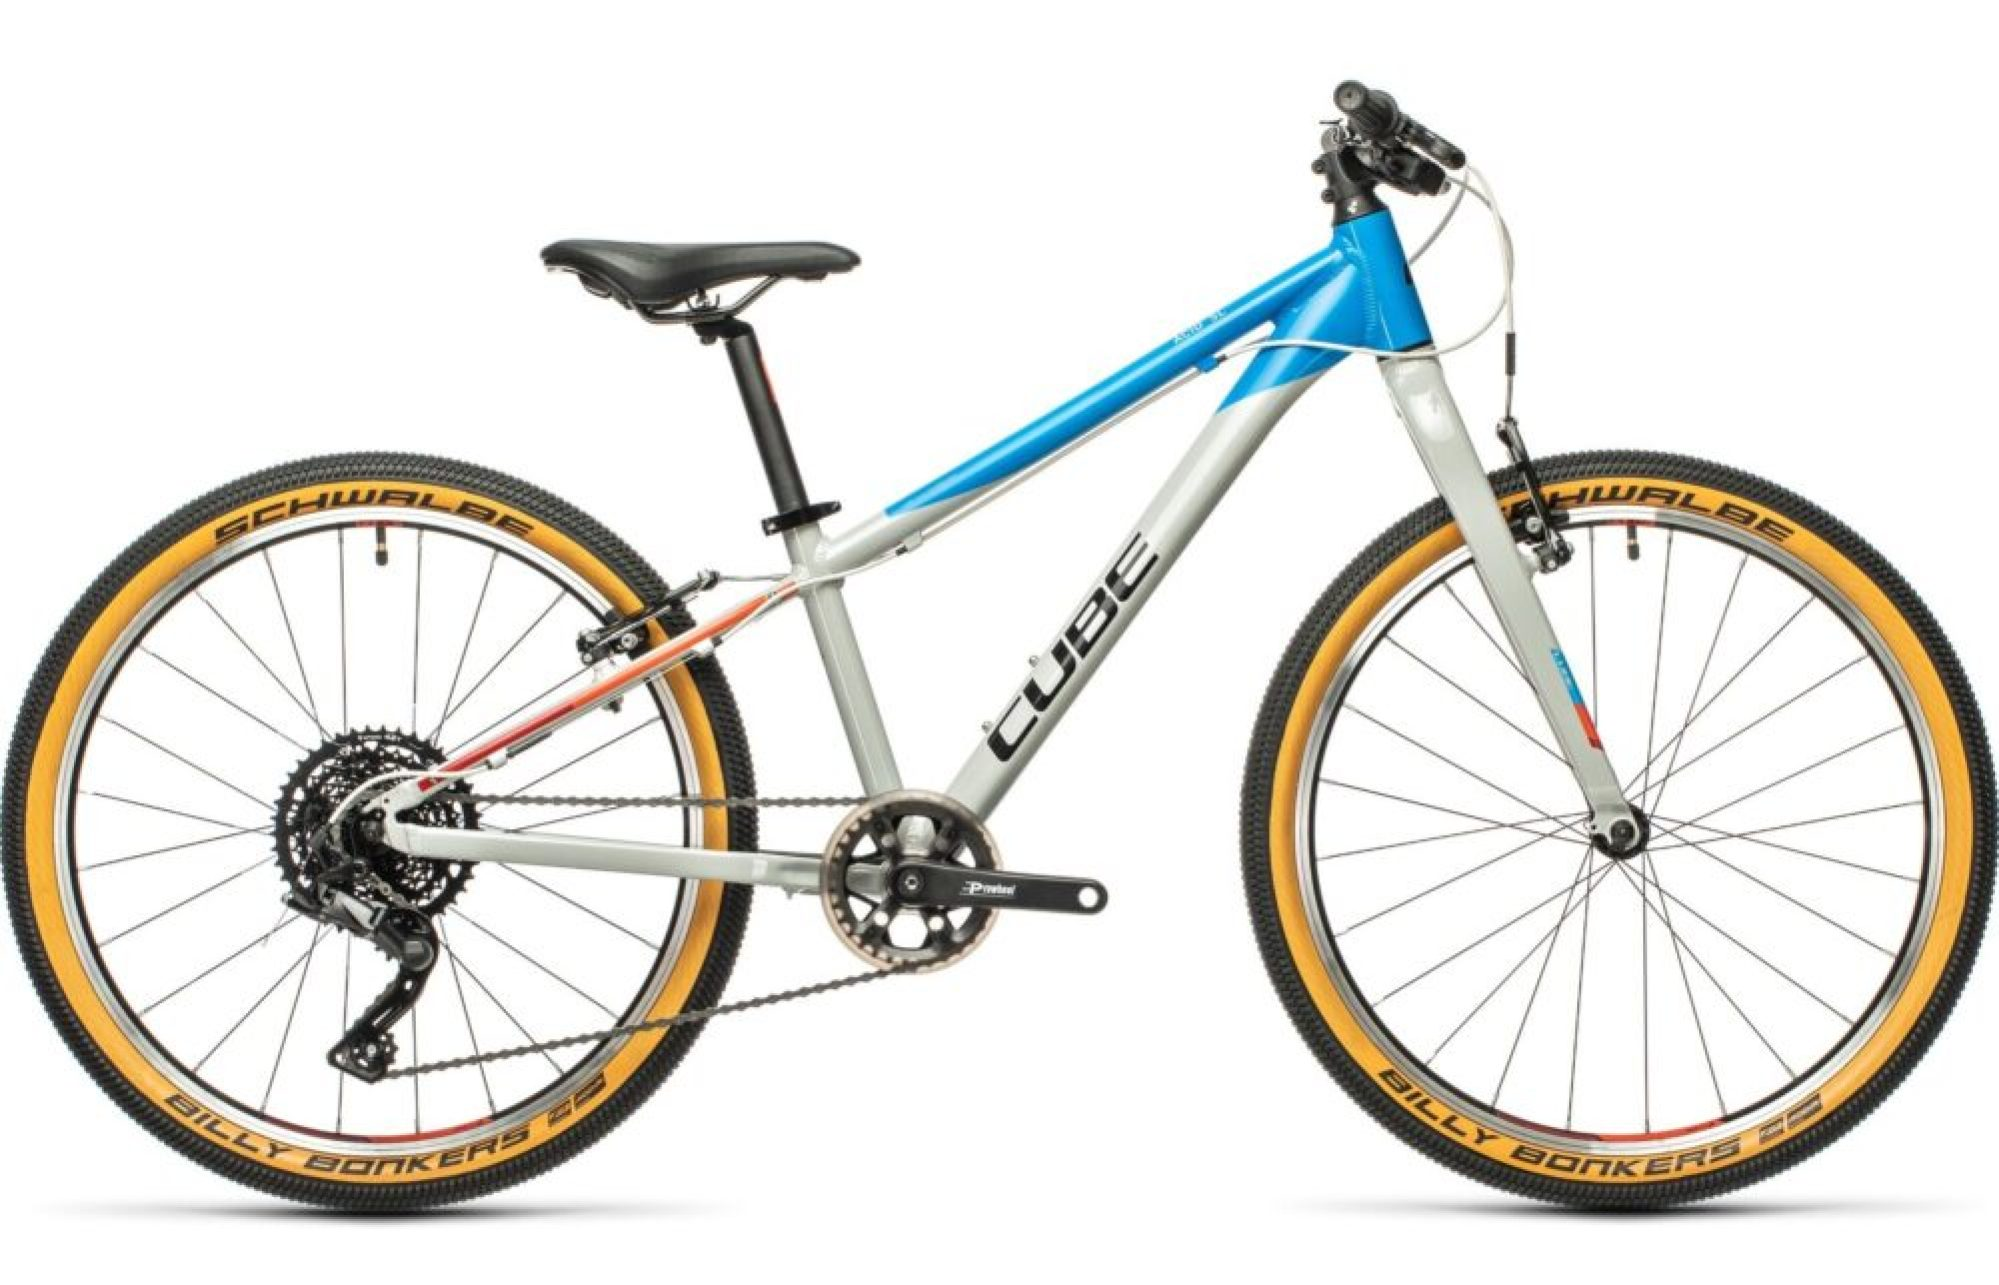 Cube Acid 240 SL 2021 - a lightweight racing Mountain Bike for a 7 year old keen mountain biker